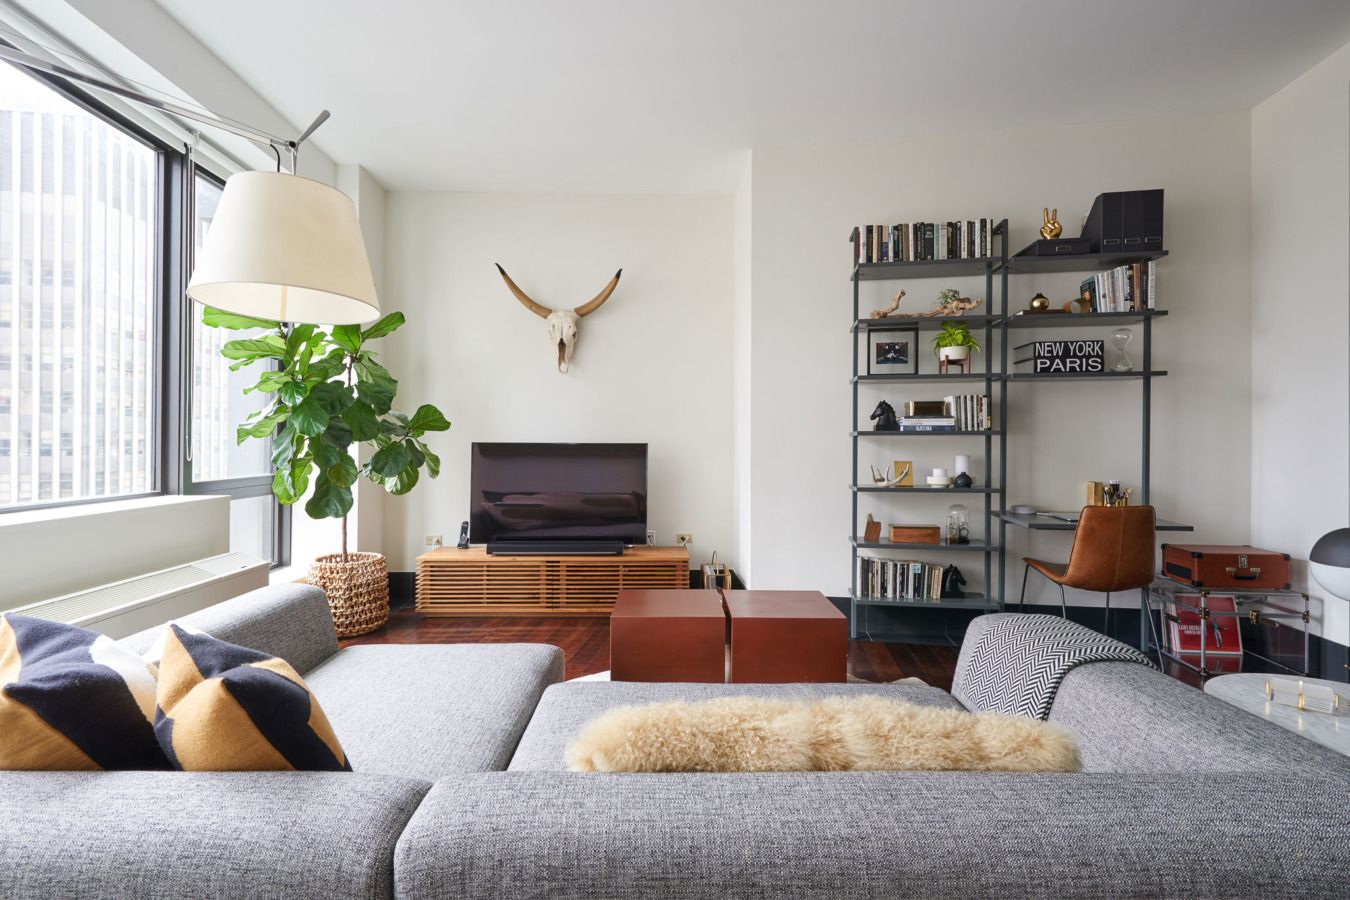 A California Vibe in a New York Penthouse | Living rooms, Room and ...